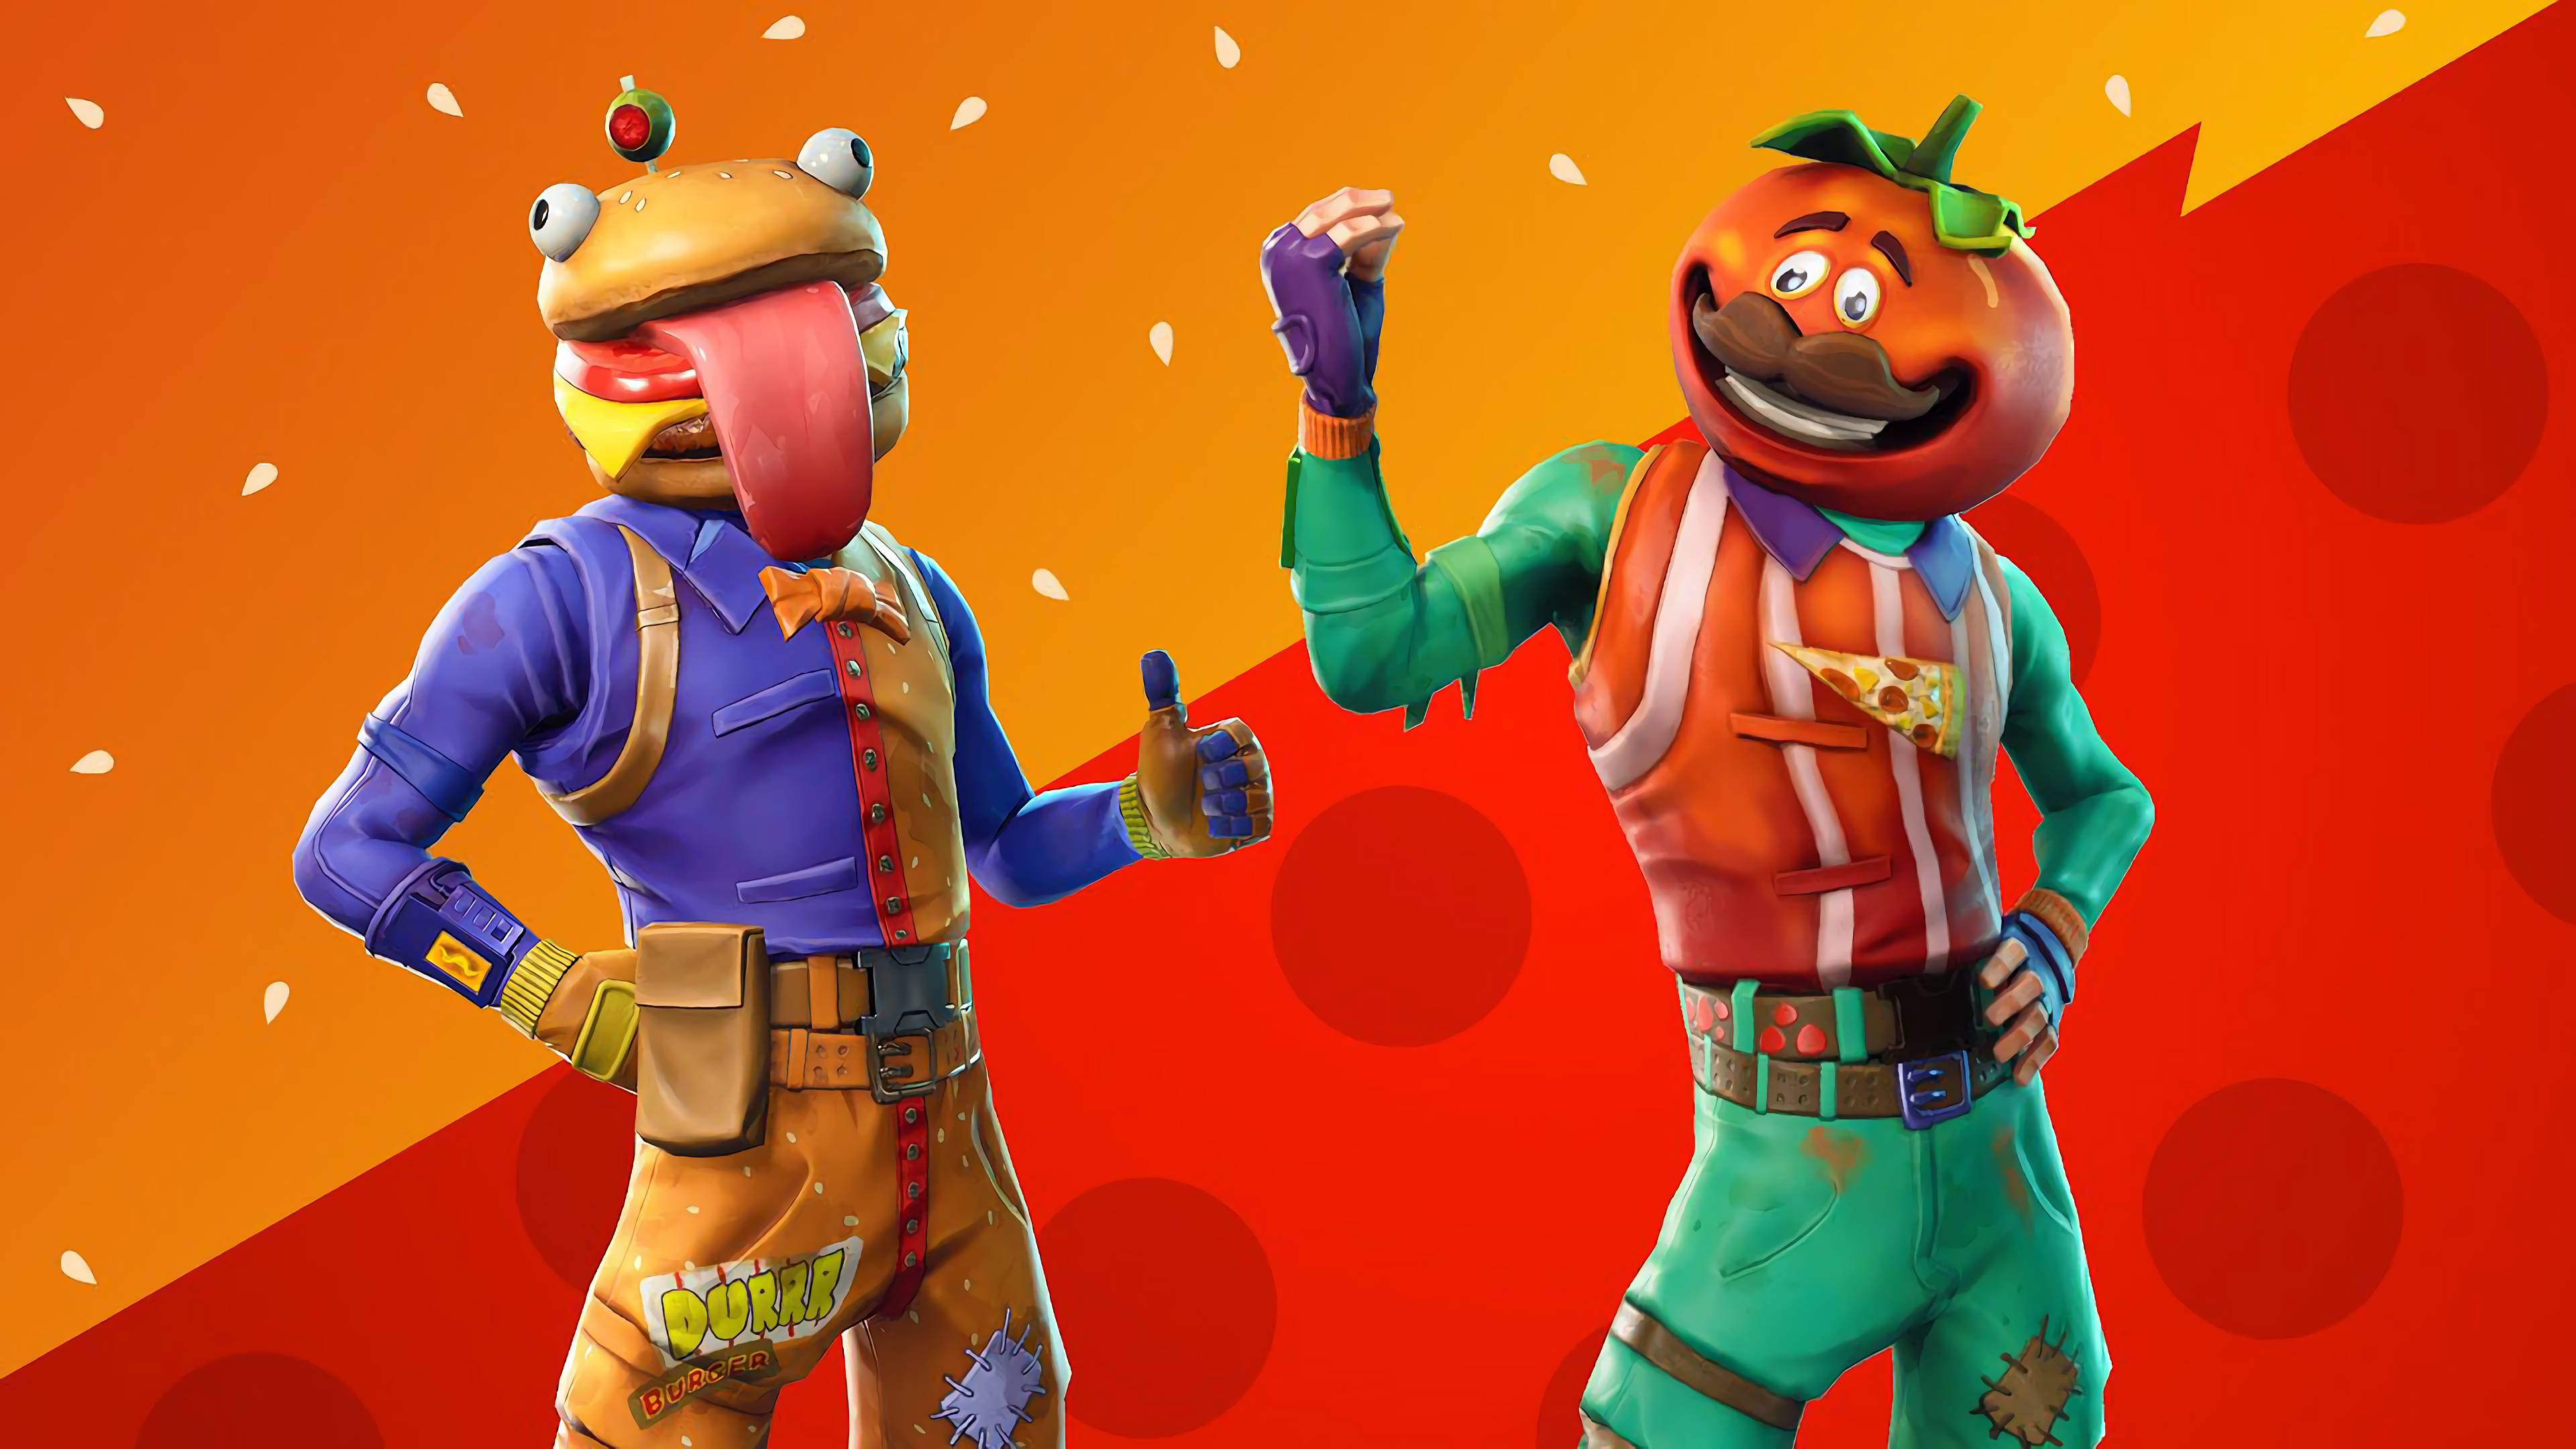 Tomatohead 4K 8K HD Fortnite Battle Royale Wallpaper